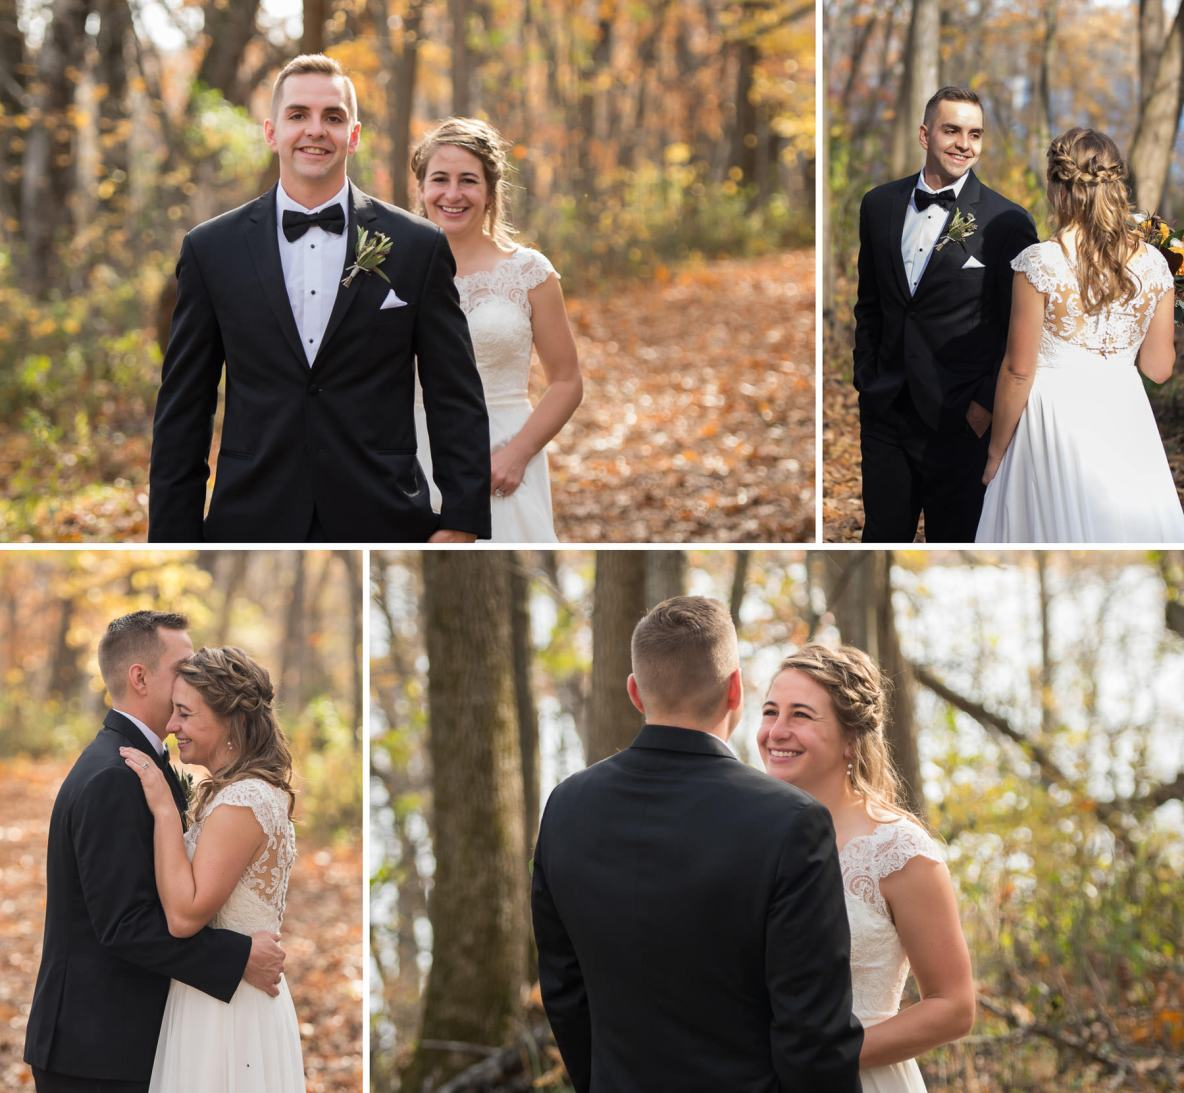 First look photos of the bride and groom outside in nature.